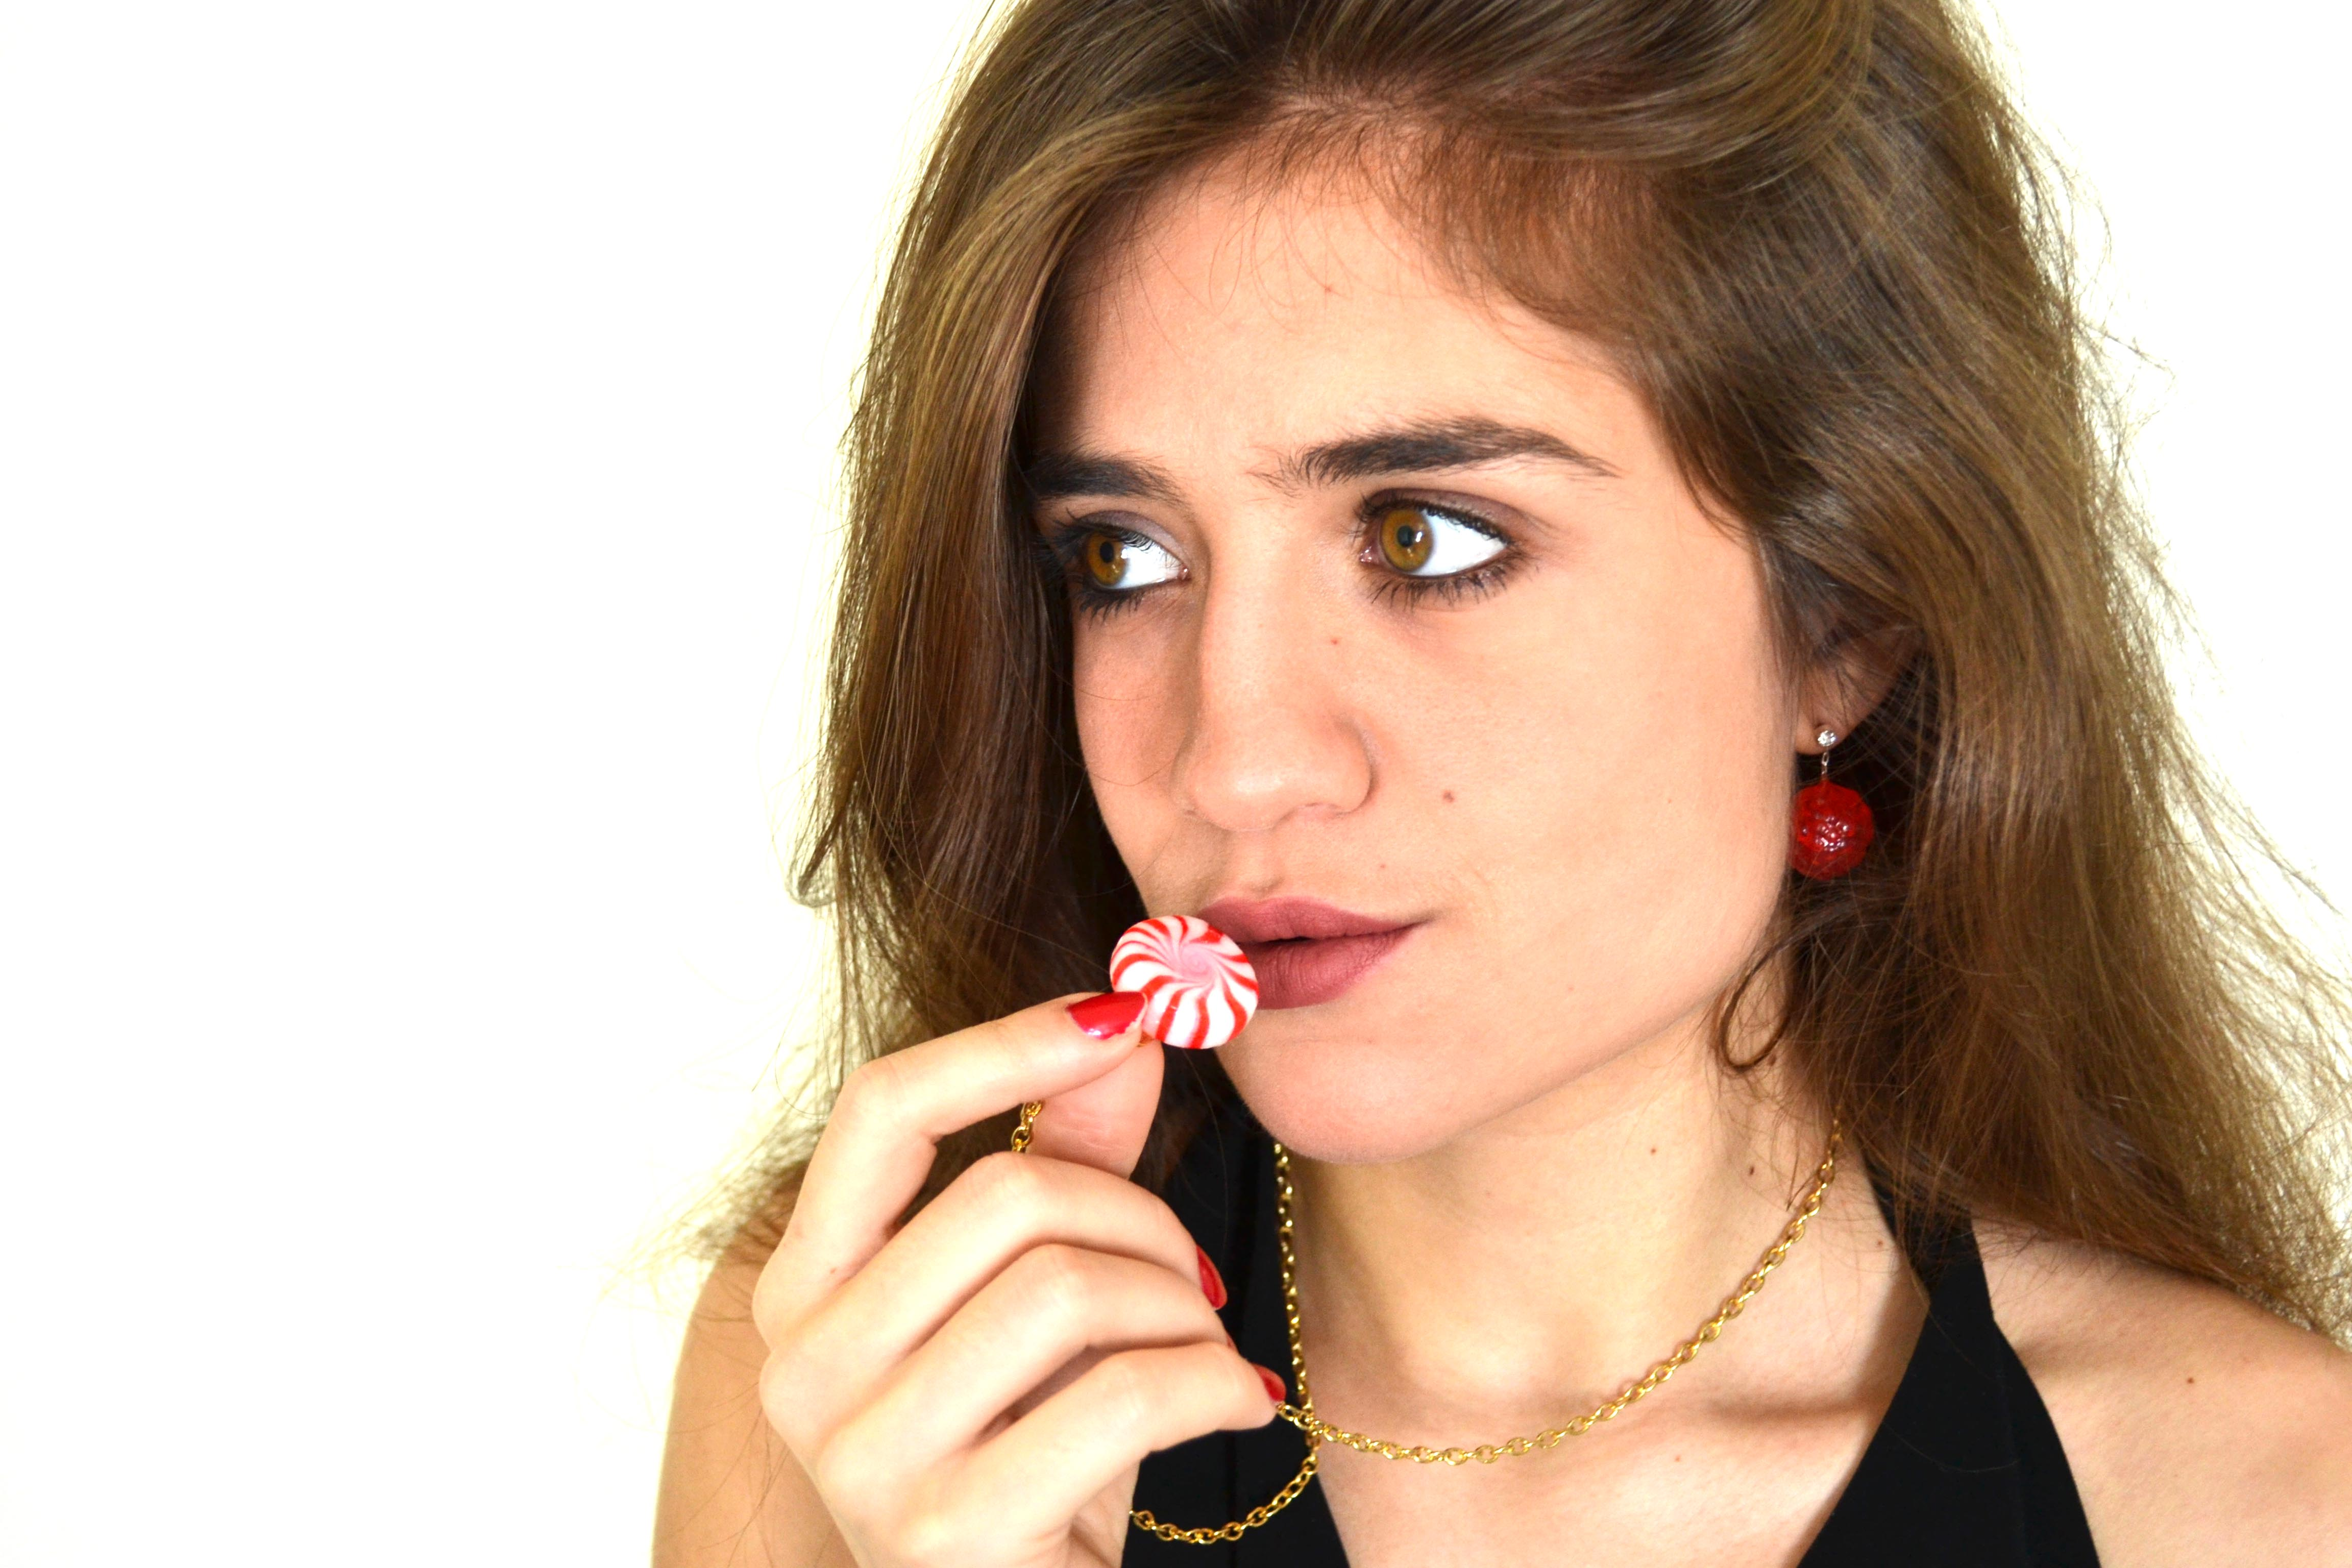 DIY Candy jewelry, a cool and easy gift idea to make her happy.